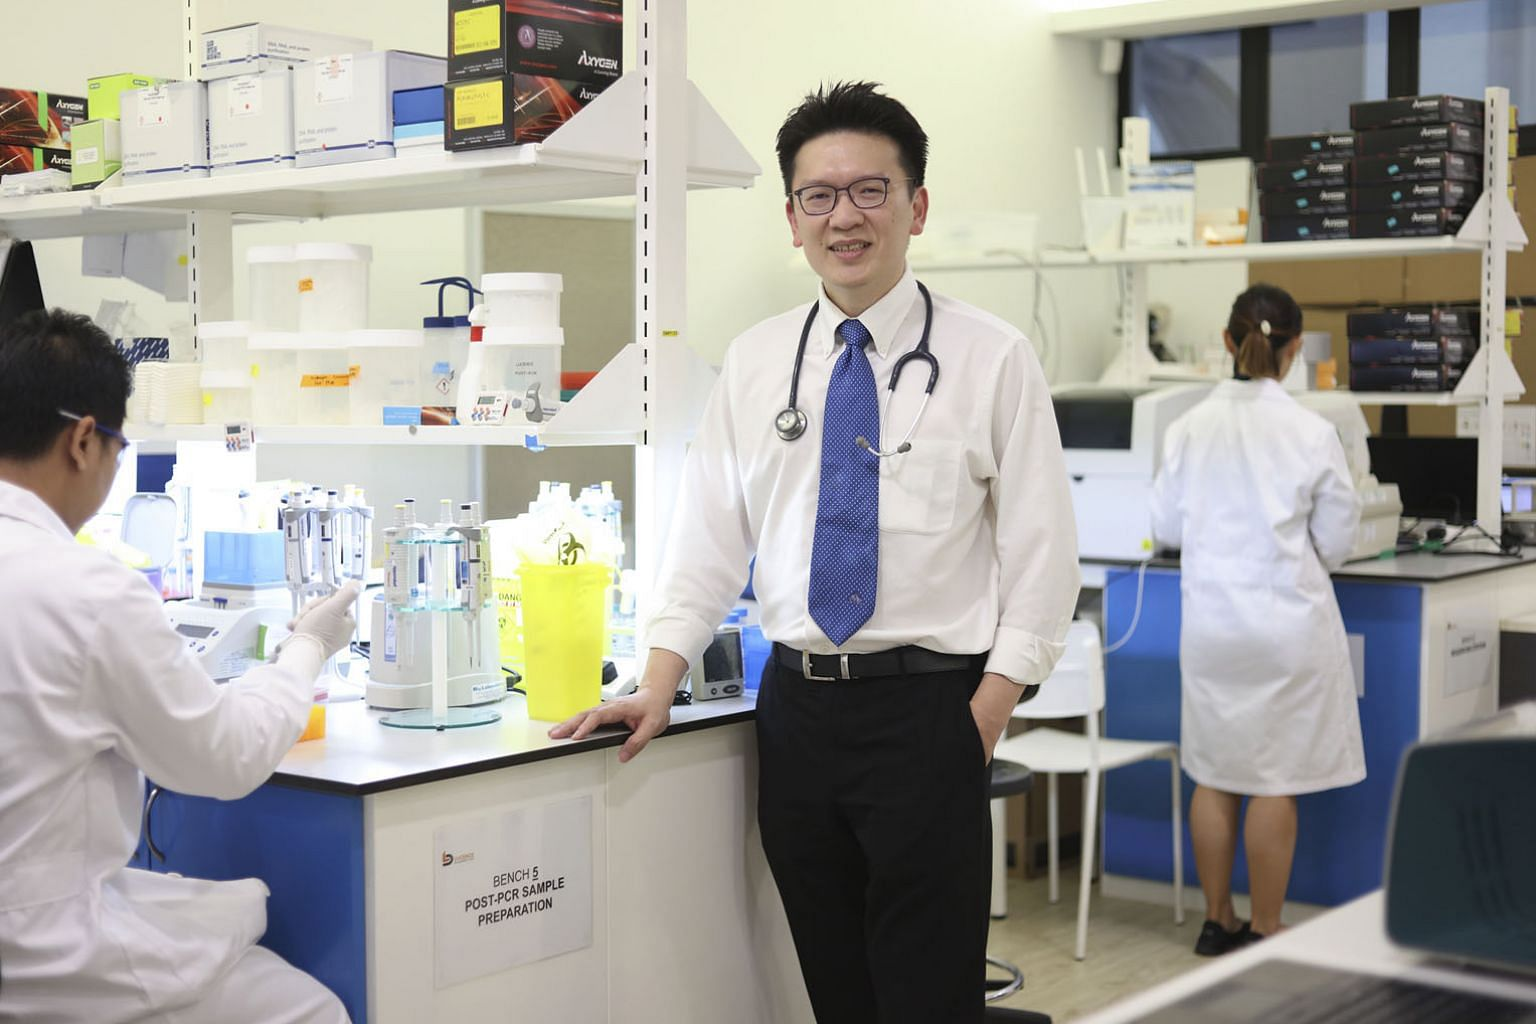 Dr Tan Min-Han, founder and CEO of Lucence Diagnostics, which has pioneered a liquid biopsy to easily detect nasopharyngeal cancer by examining a patient's blood. Through zooming in on a DNA fragment of the cancer-causing Epstein-Barr virus called BamHI-W